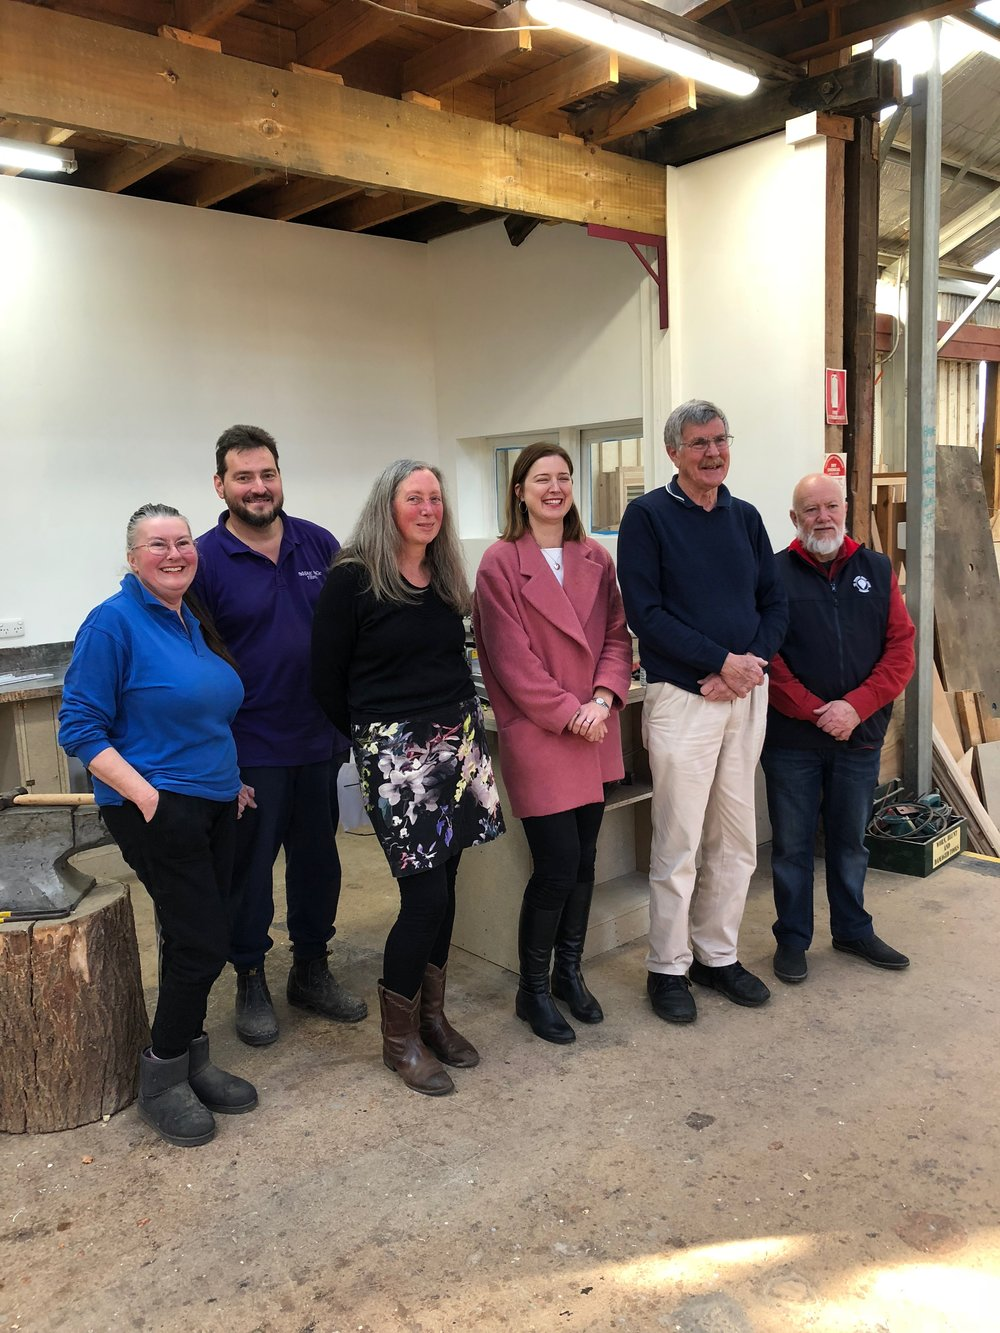 Christina Kent, Francis Shepherd, Anne Holst, Julie Collins, Alan Cato and Graham Rankin in front of the metal work area that is having a facelift.